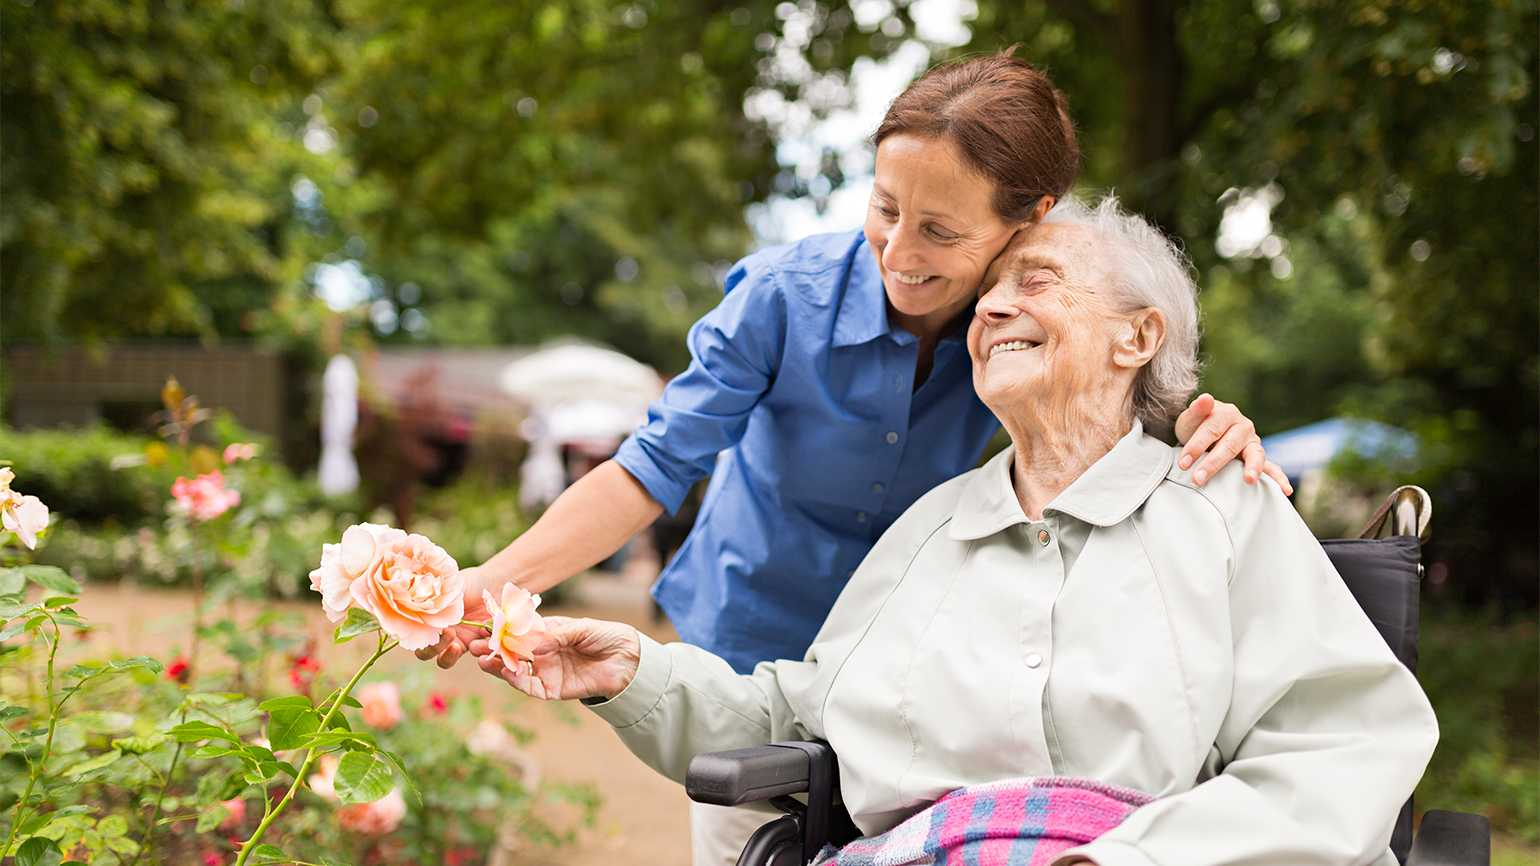 The Important Stage of Caregiving That No One Talks About